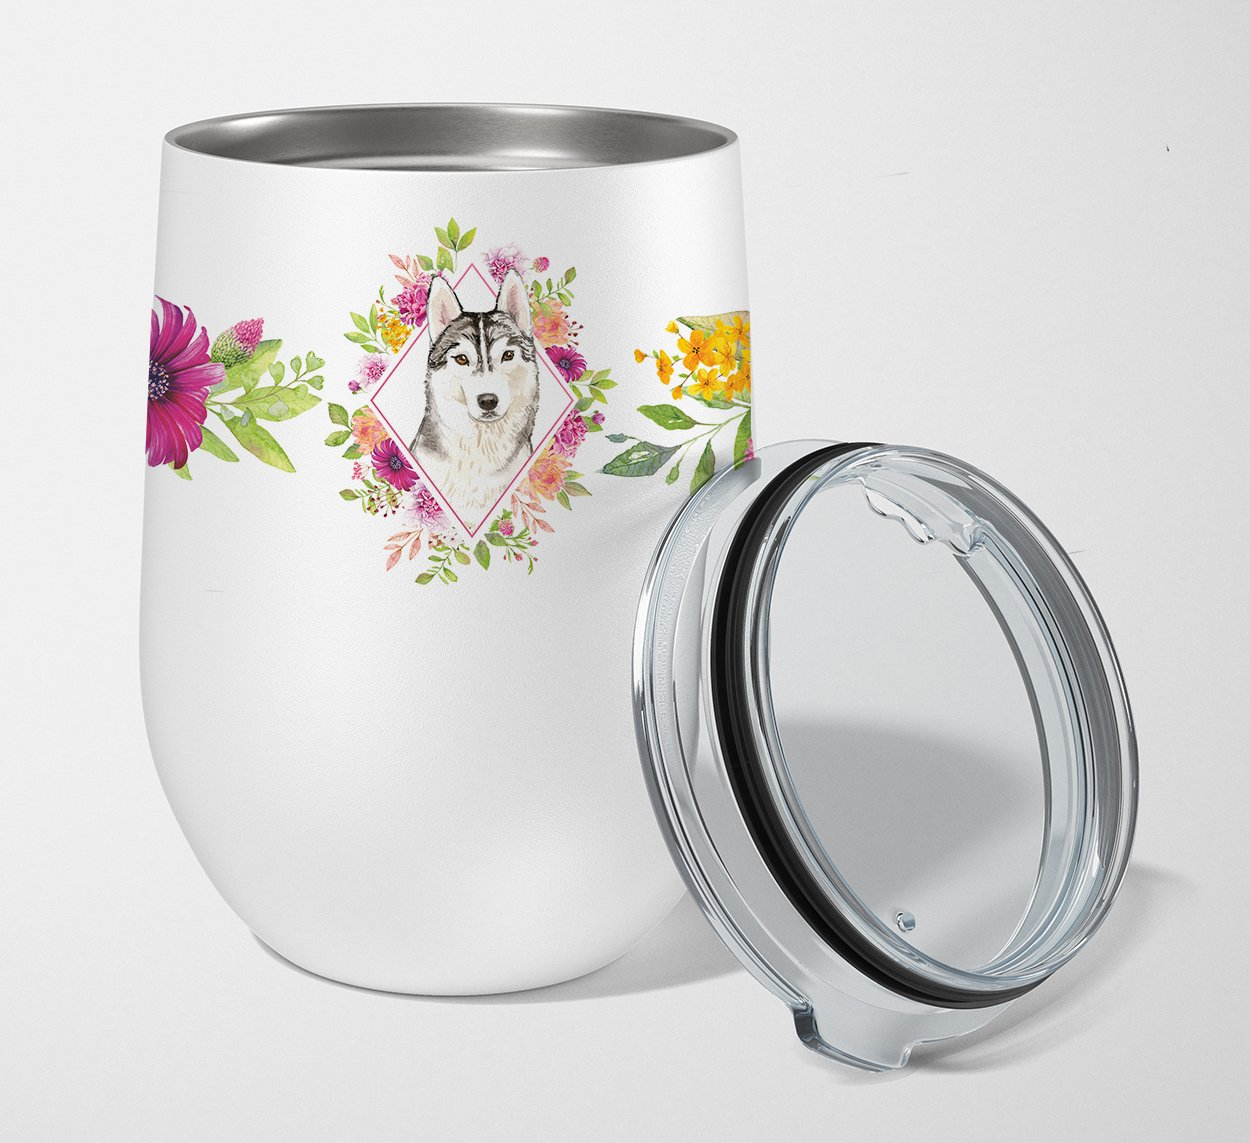 Siberian Husky Pink Flowers Stainless Steel 12 oz Stemless Wine Glass CK4210TBL12 by Caroline's Treasures